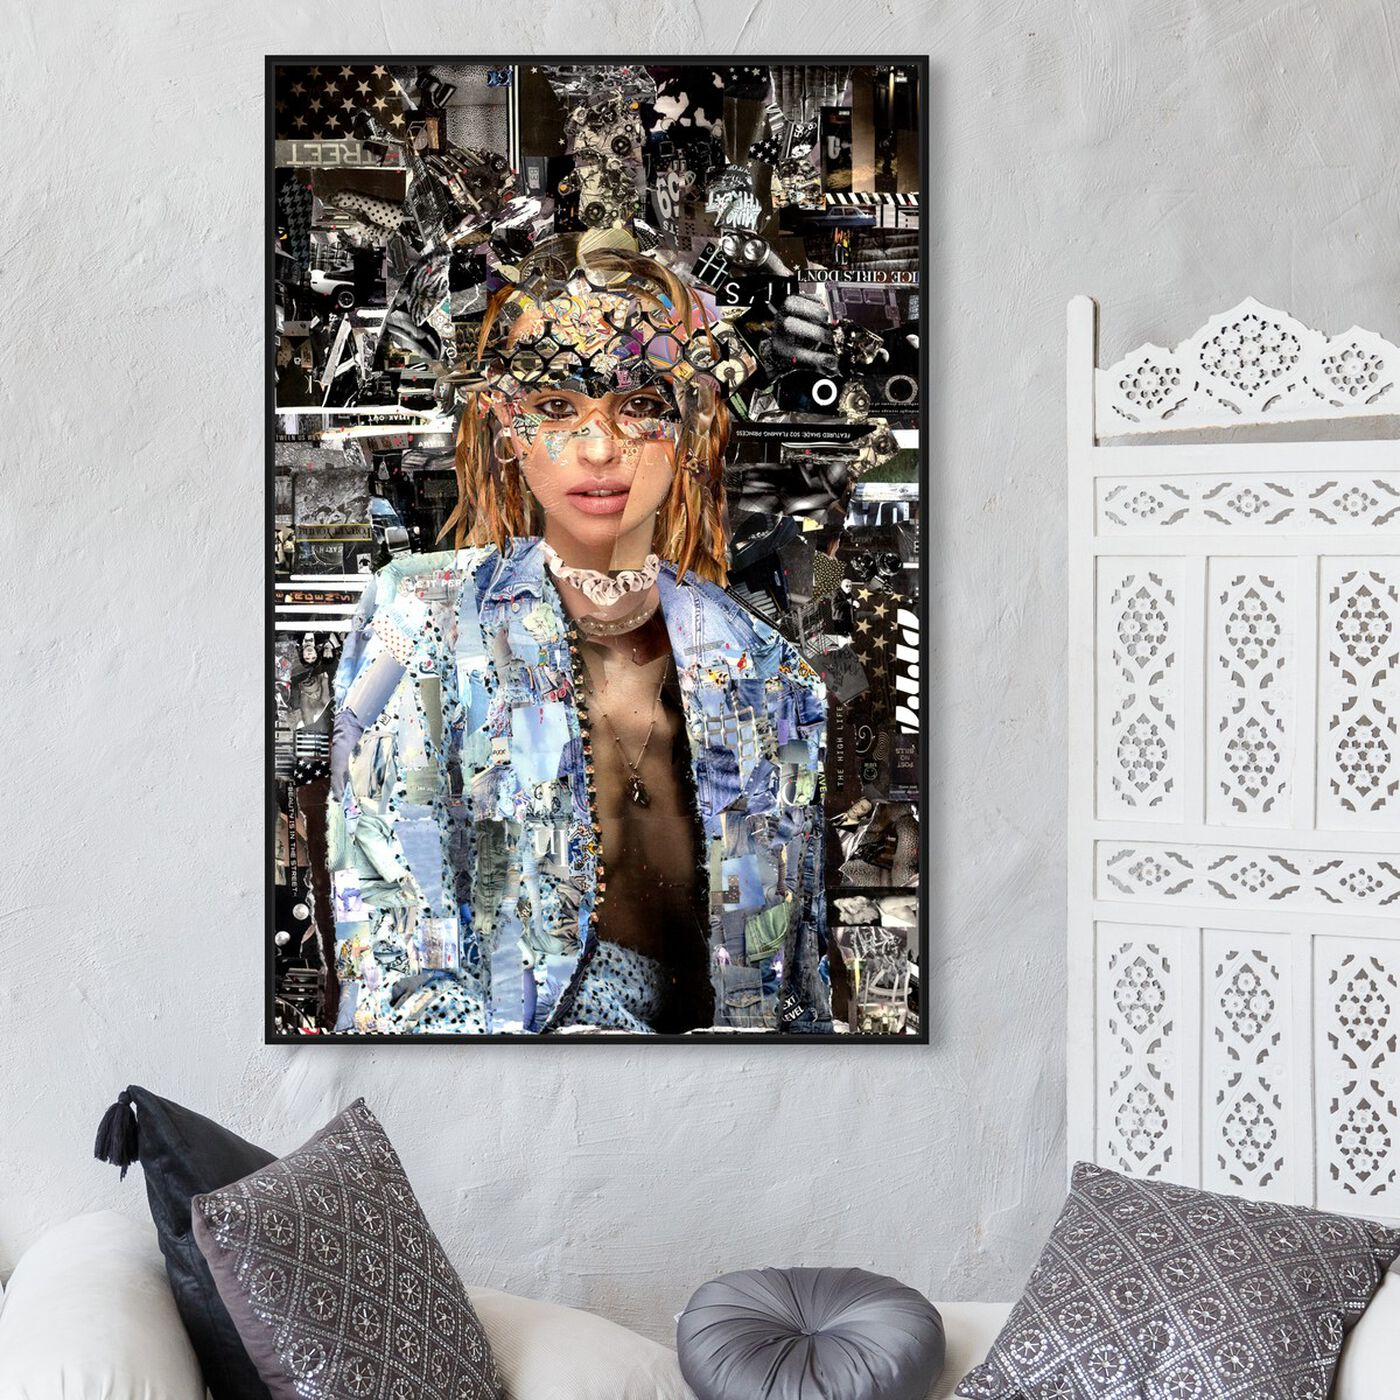 Hanging view of Katy Hirschfeld - Queen of her Realm featuring fashion and glam and portraits art.